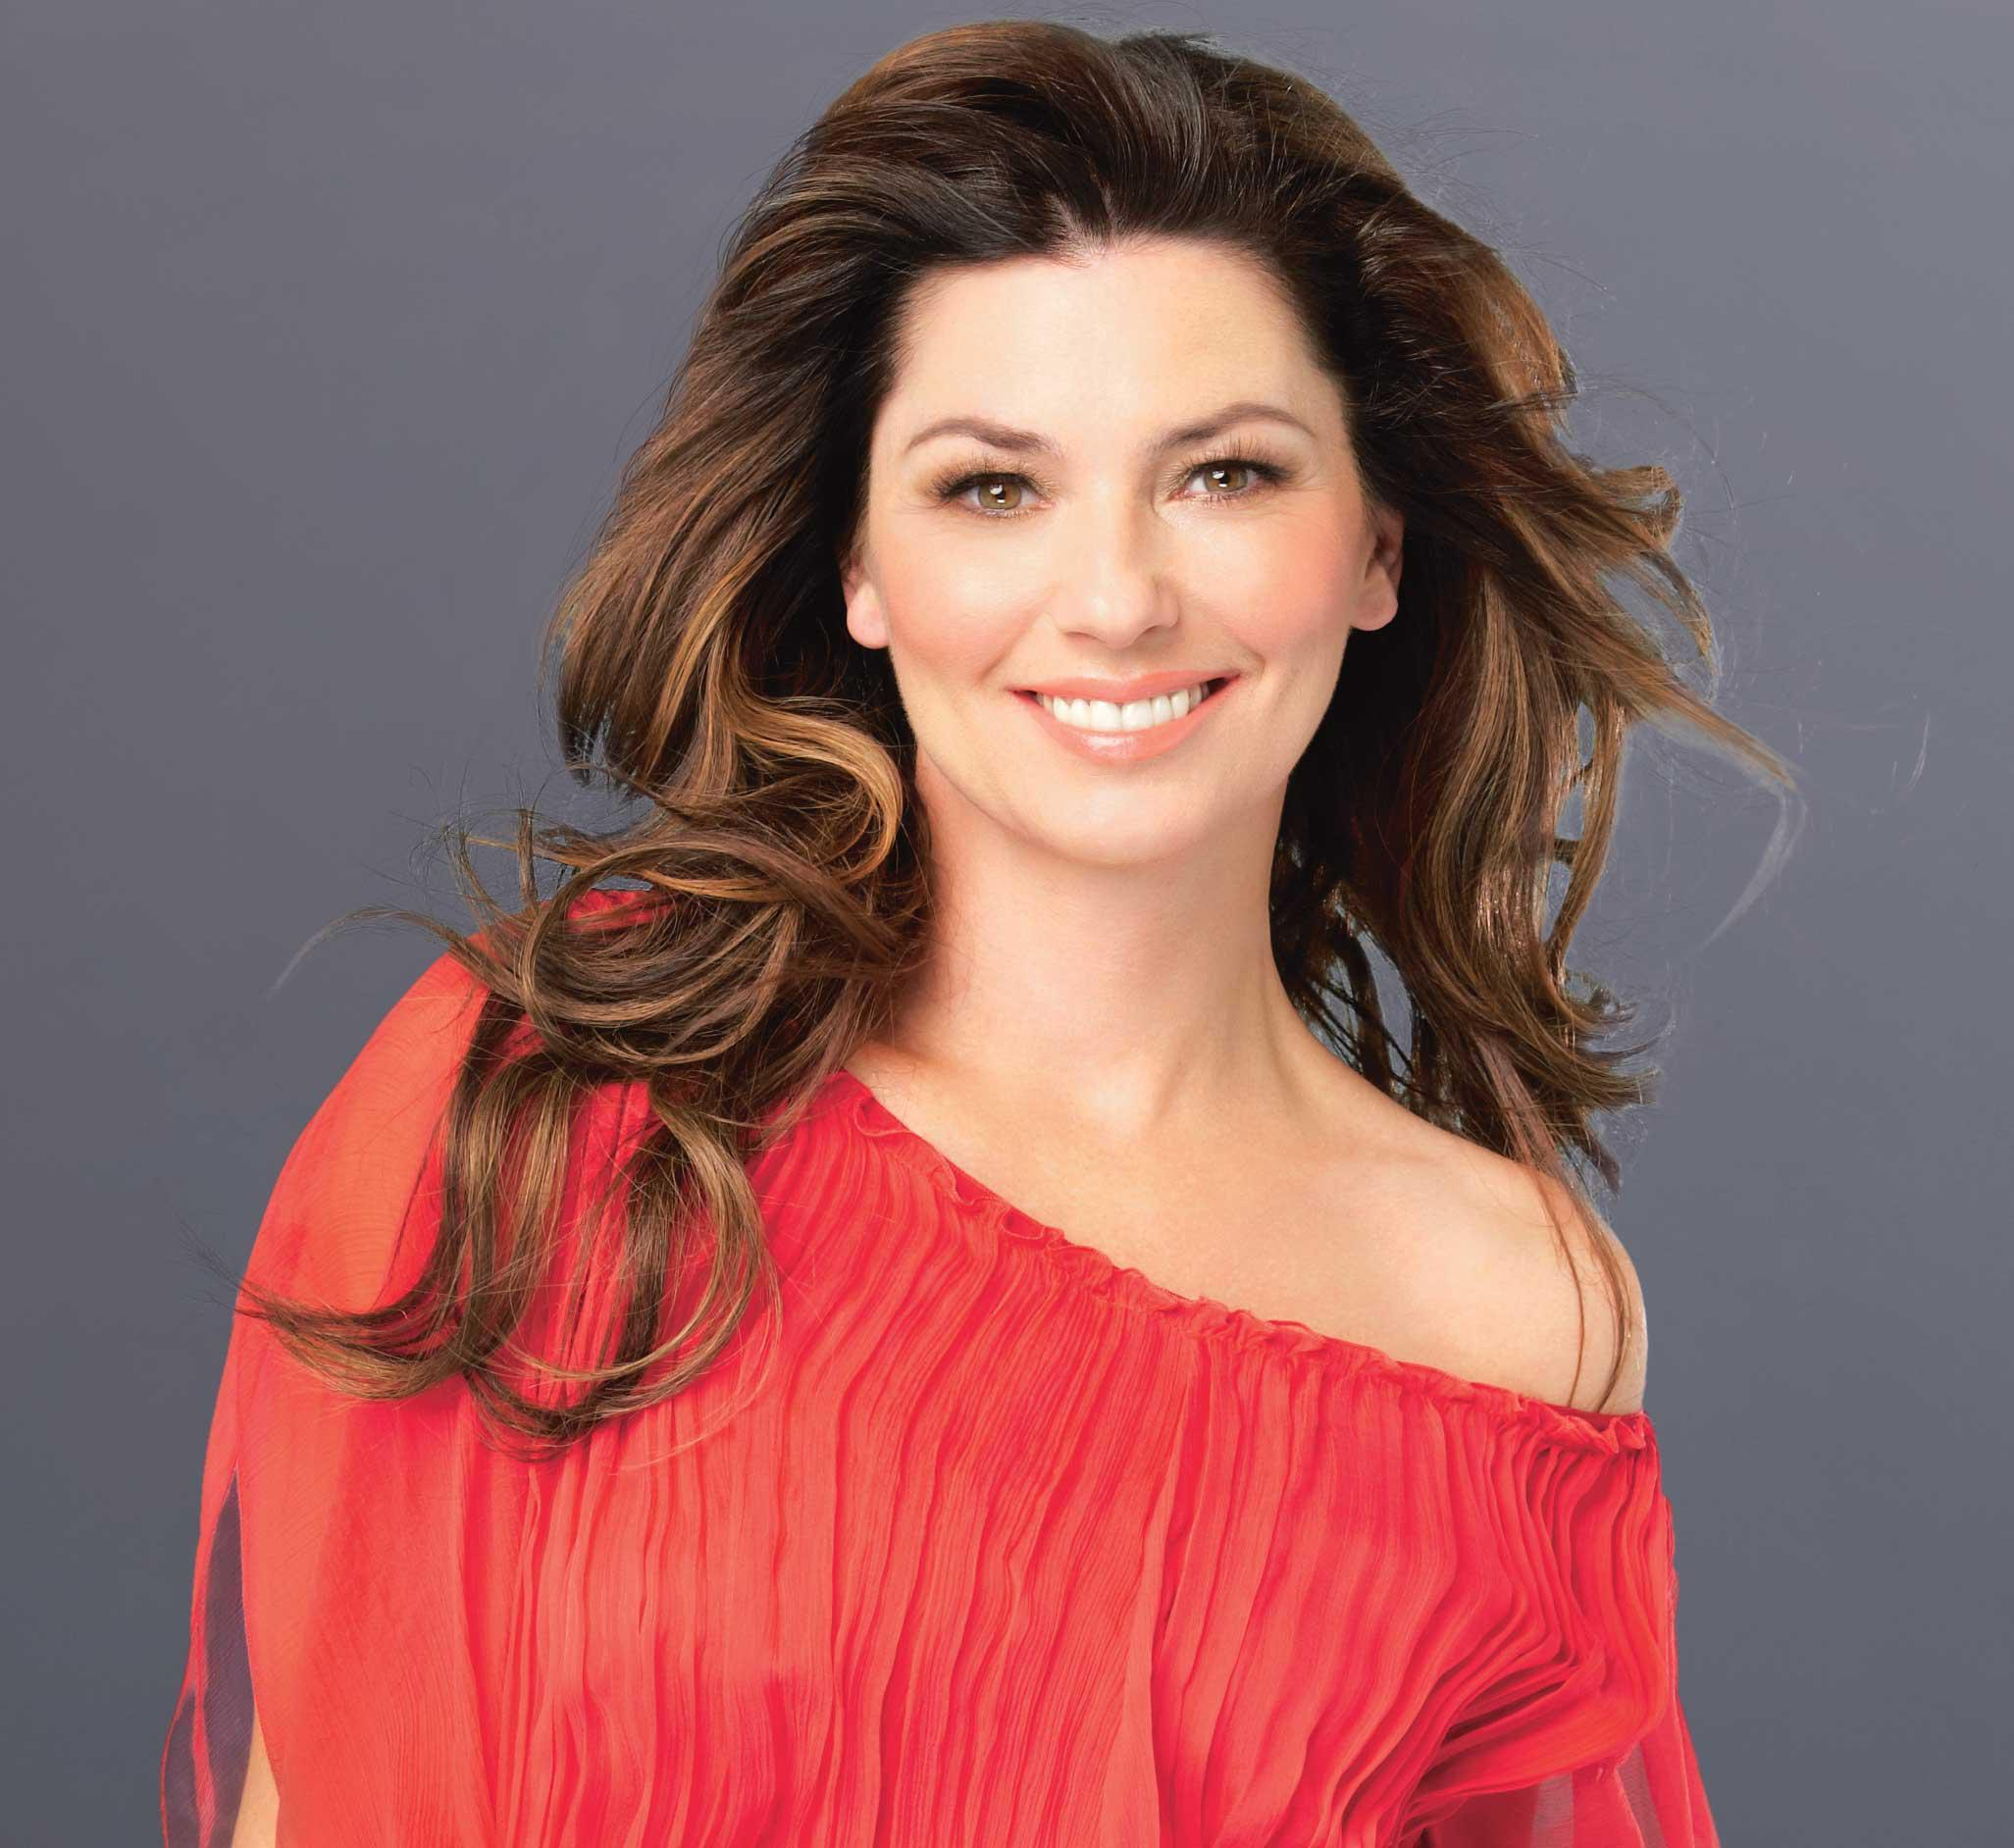 Shania Twain Opens Up About Her Abusive Past In Emotional ...